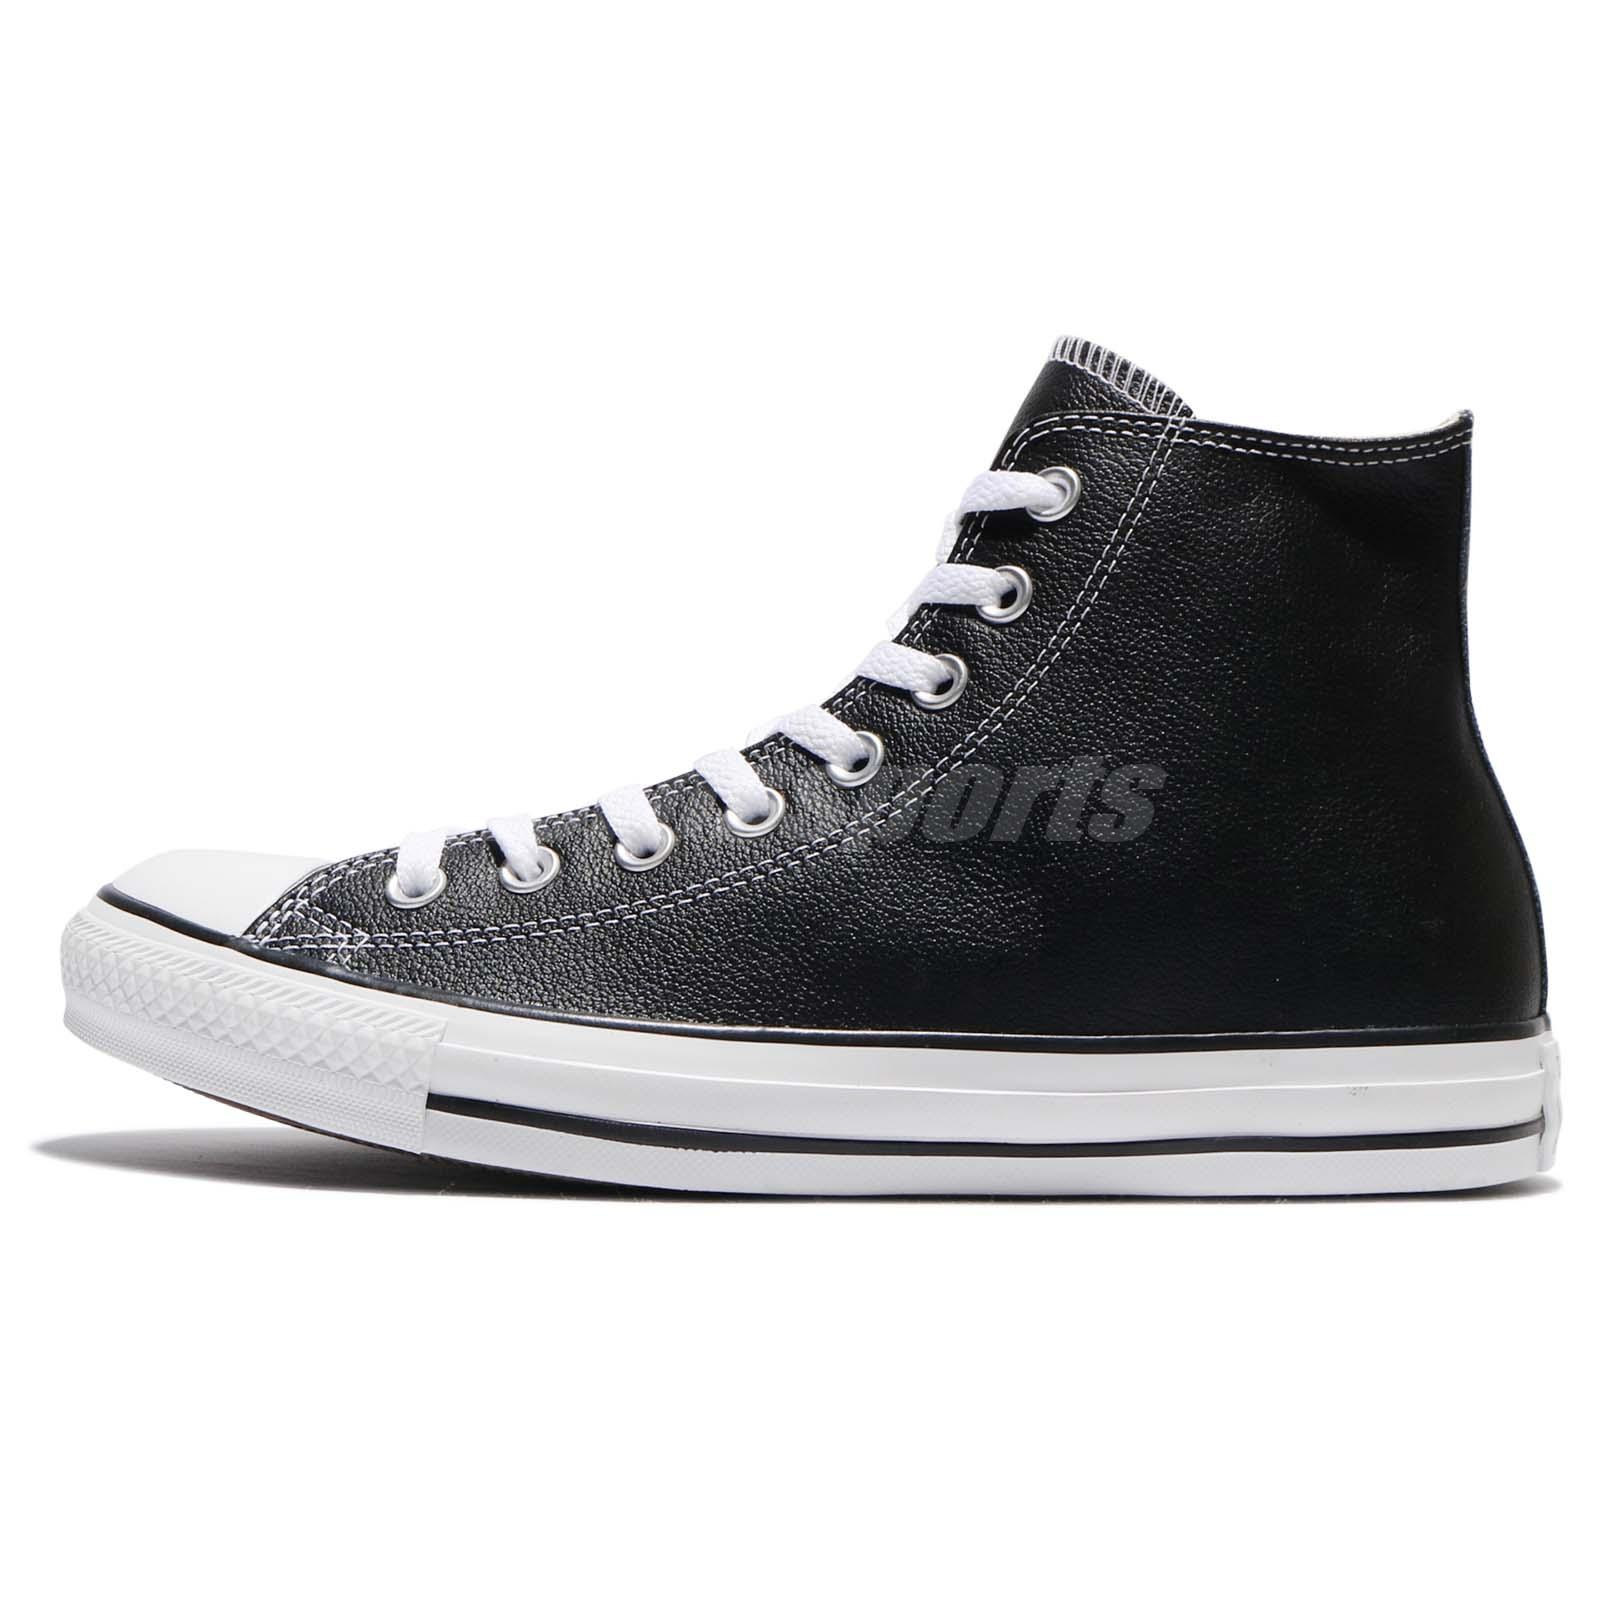 078ecd07efc6 Converse Chuck Taylor All Star Hi Black Leather Men Women Sneakers Shoes  132170C